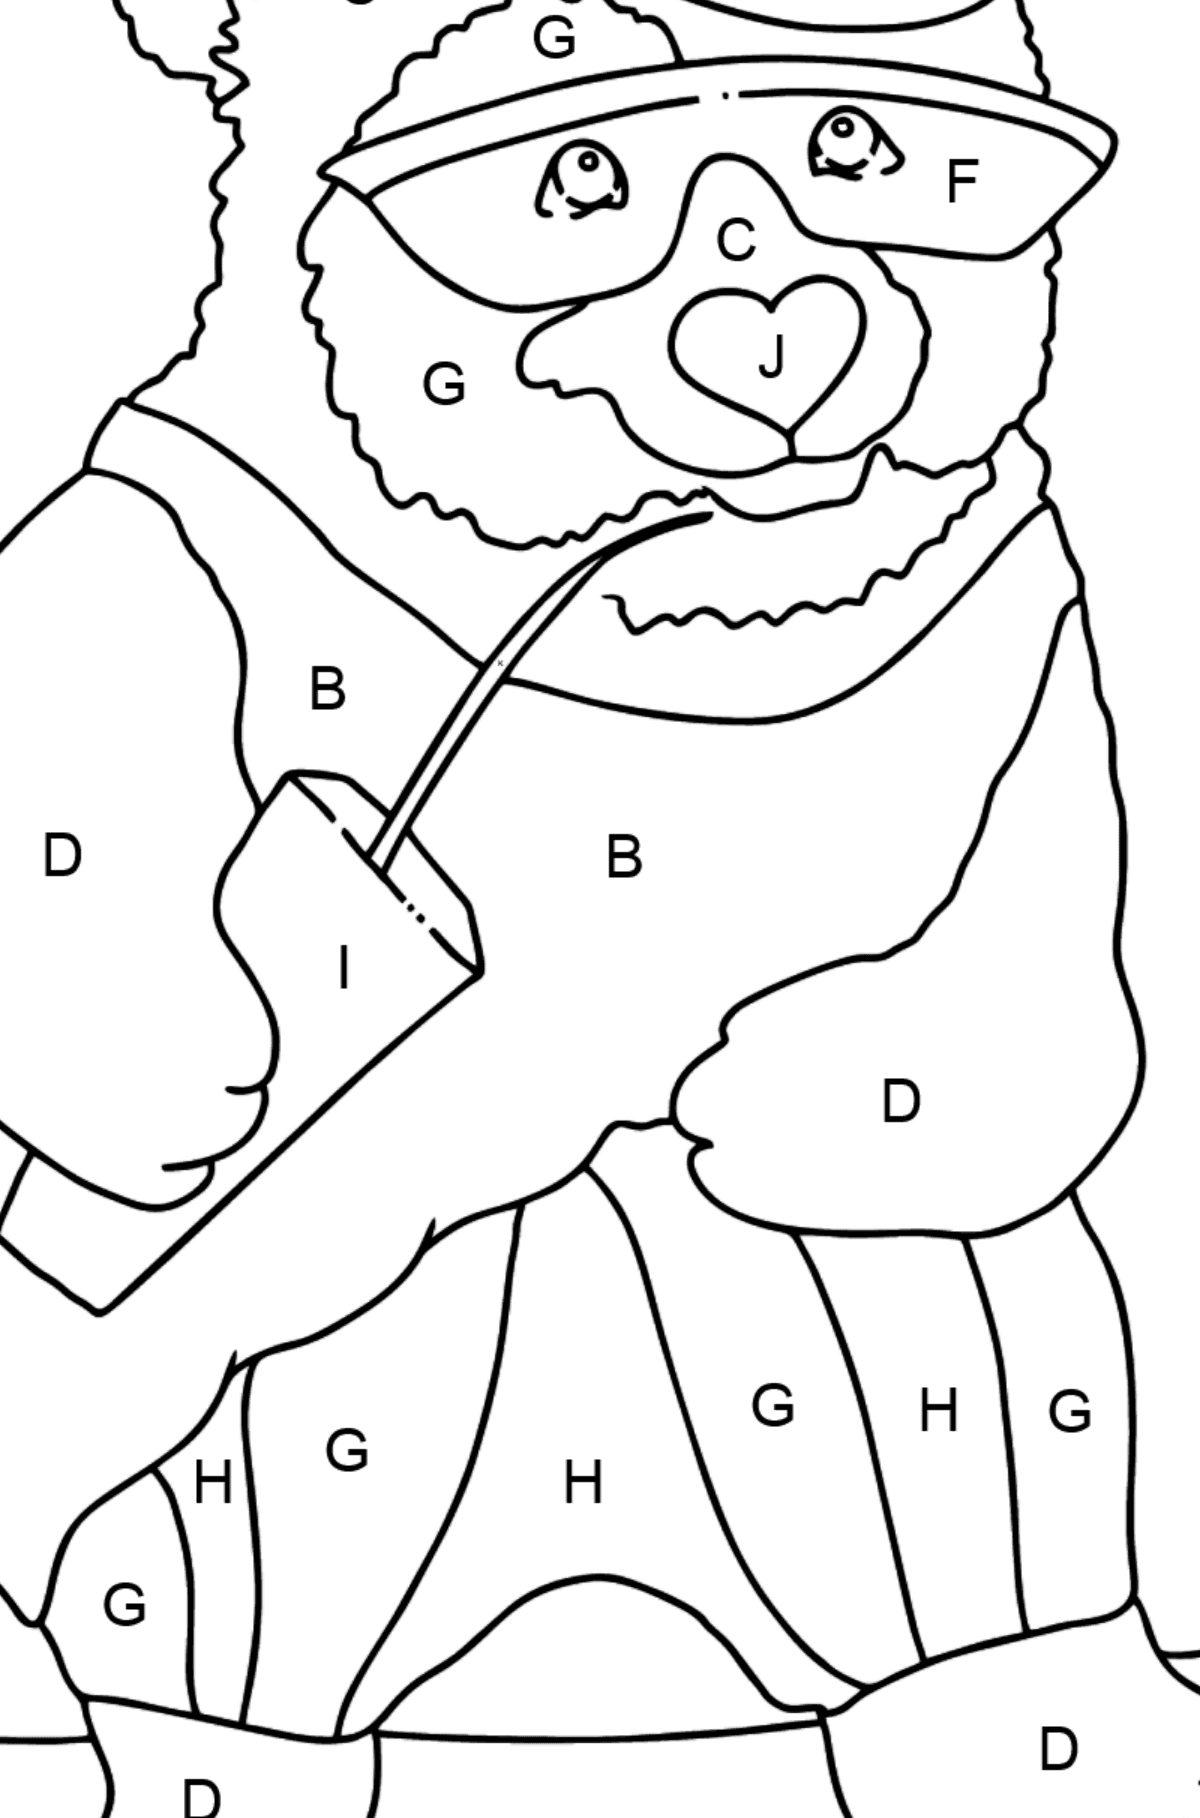 Coloring Page - A Panda is Learning to Ride a Skateboard - Coloring by Letters for Kids